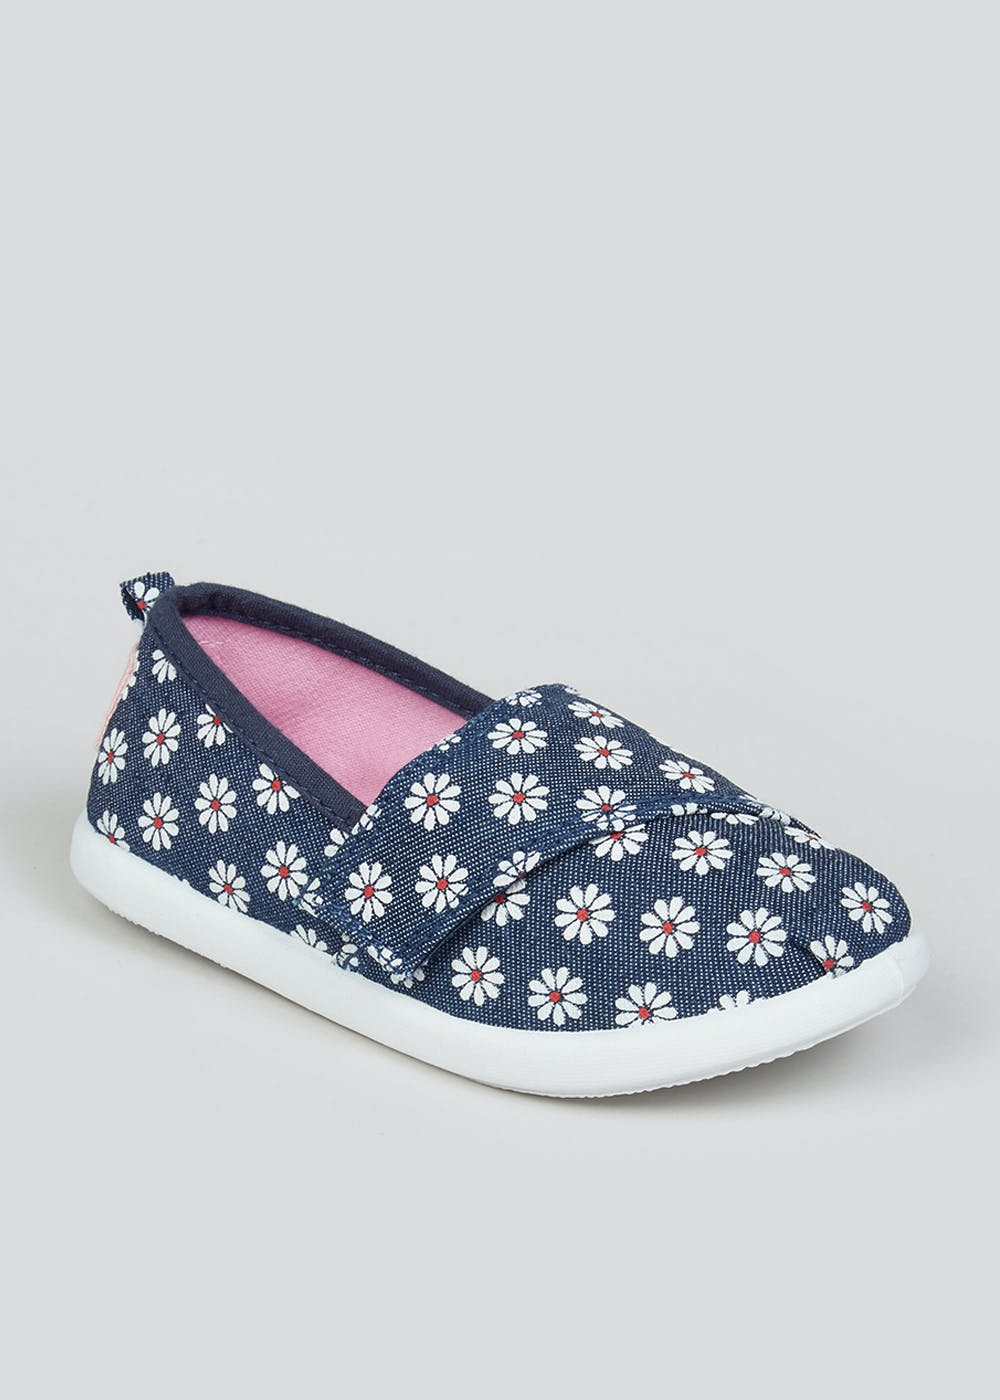 Girls Tennis Shoes Size 1 Floral Flats Casual Sneakers Slip On Canvas Loafers